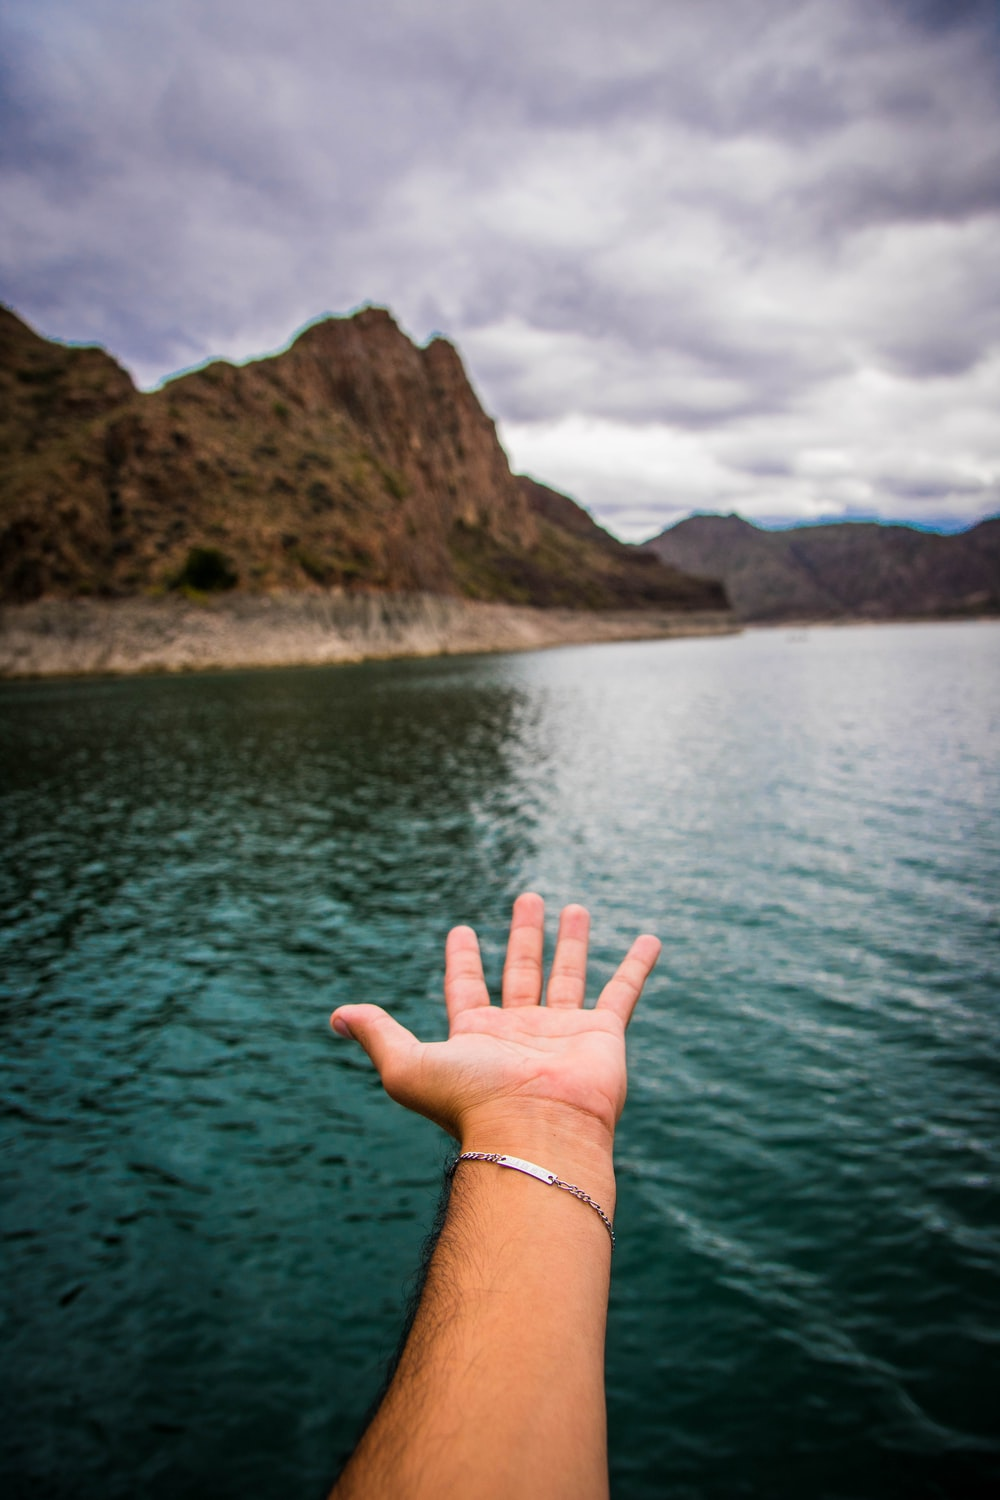 person with green manicure near body of water during daytime